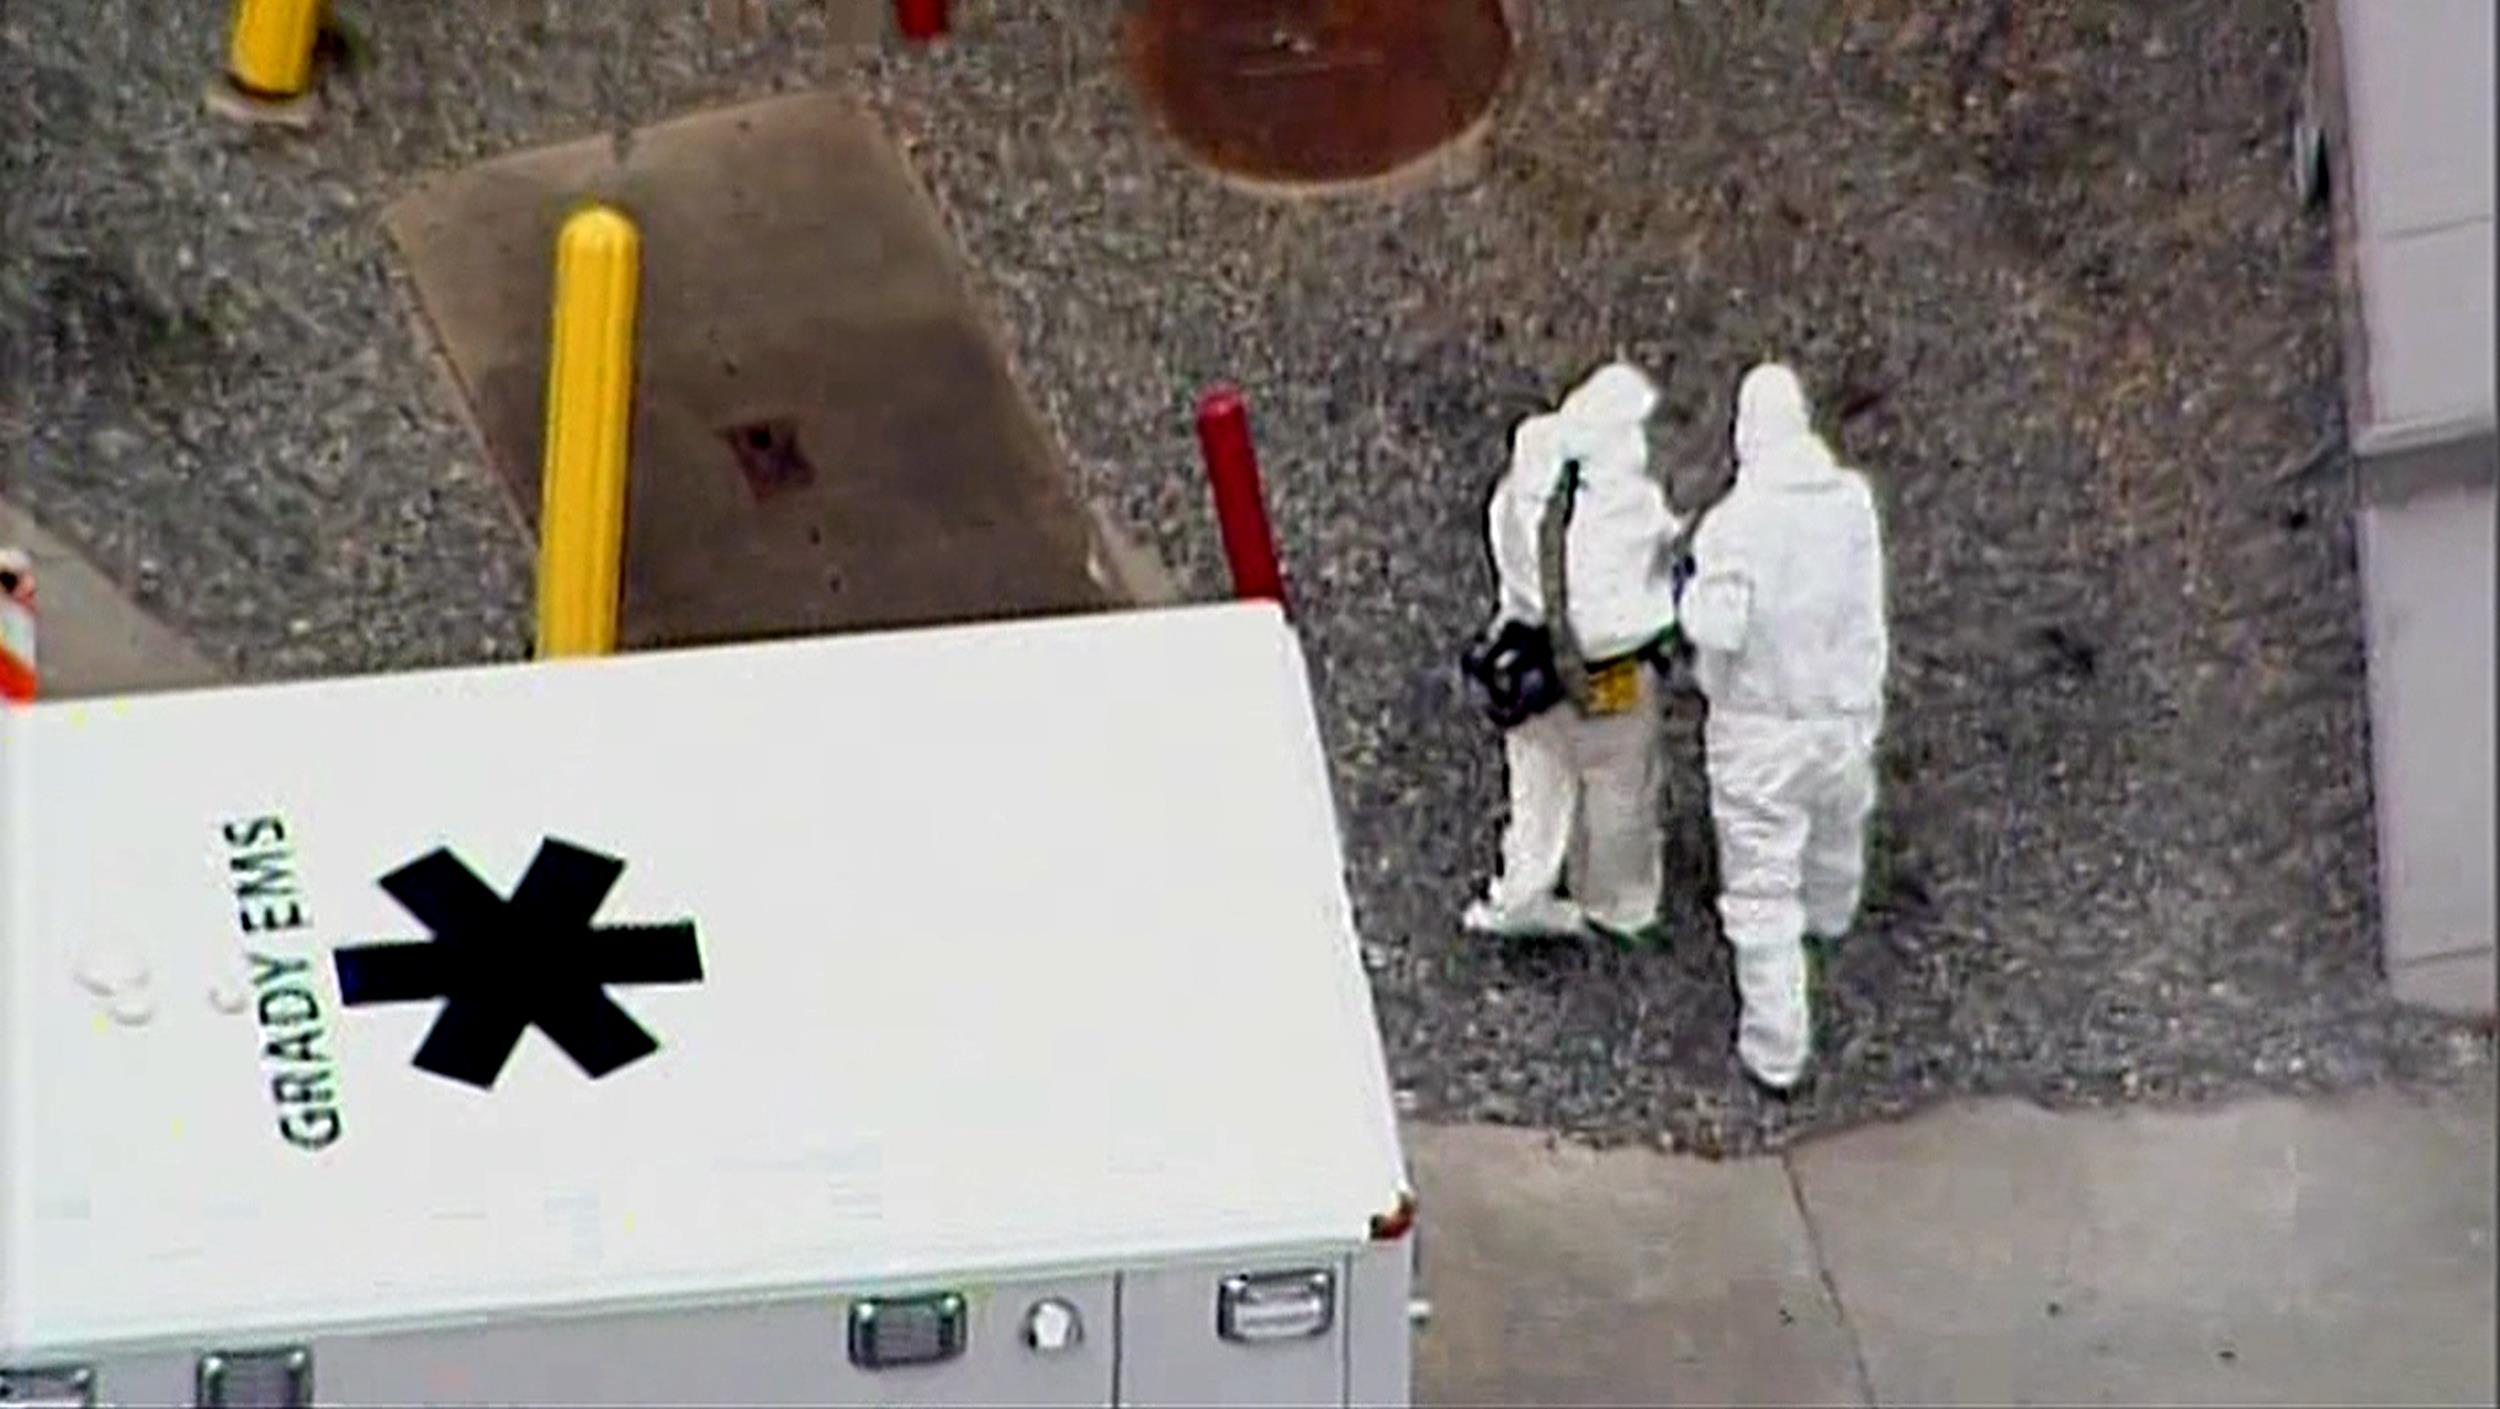 Image: Dr. Kent Brantly and a man in a protective suit leave an ambulance at Emory University Hospital